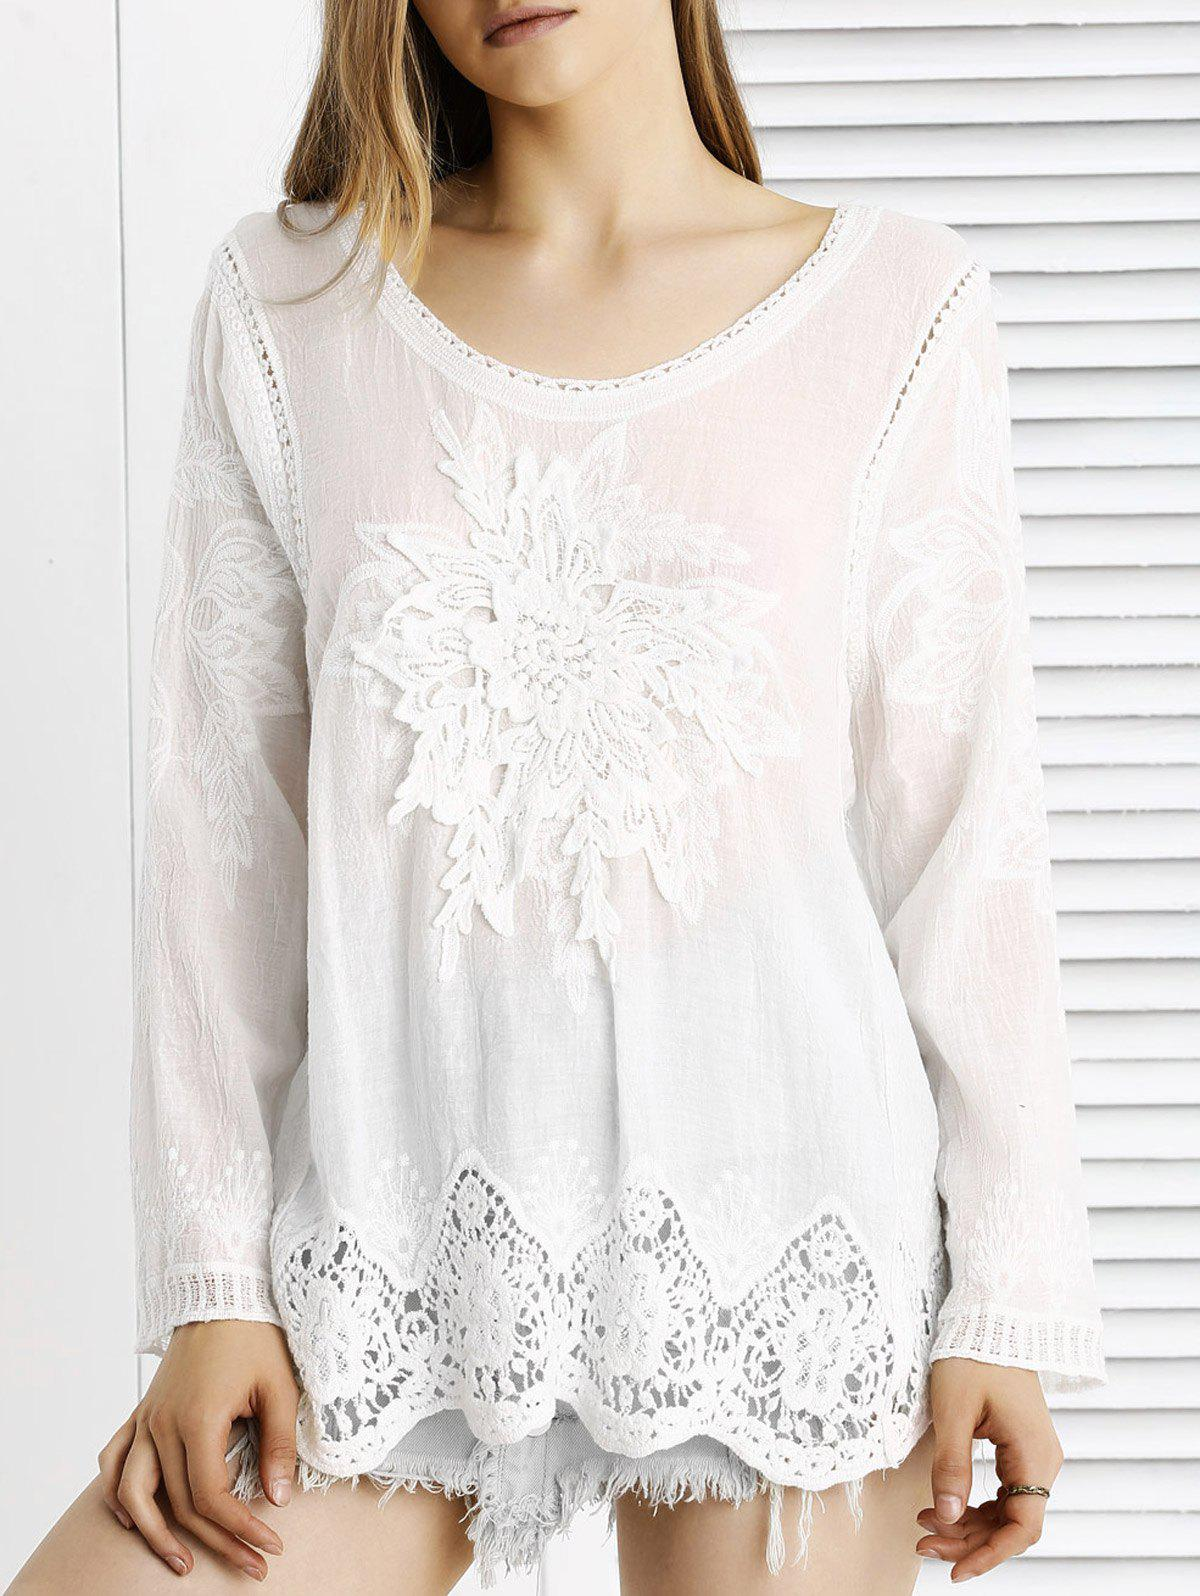 Chic Lace Crochet Trim See-Through Floral Spliced Blouse - WHITE ONE SIZE